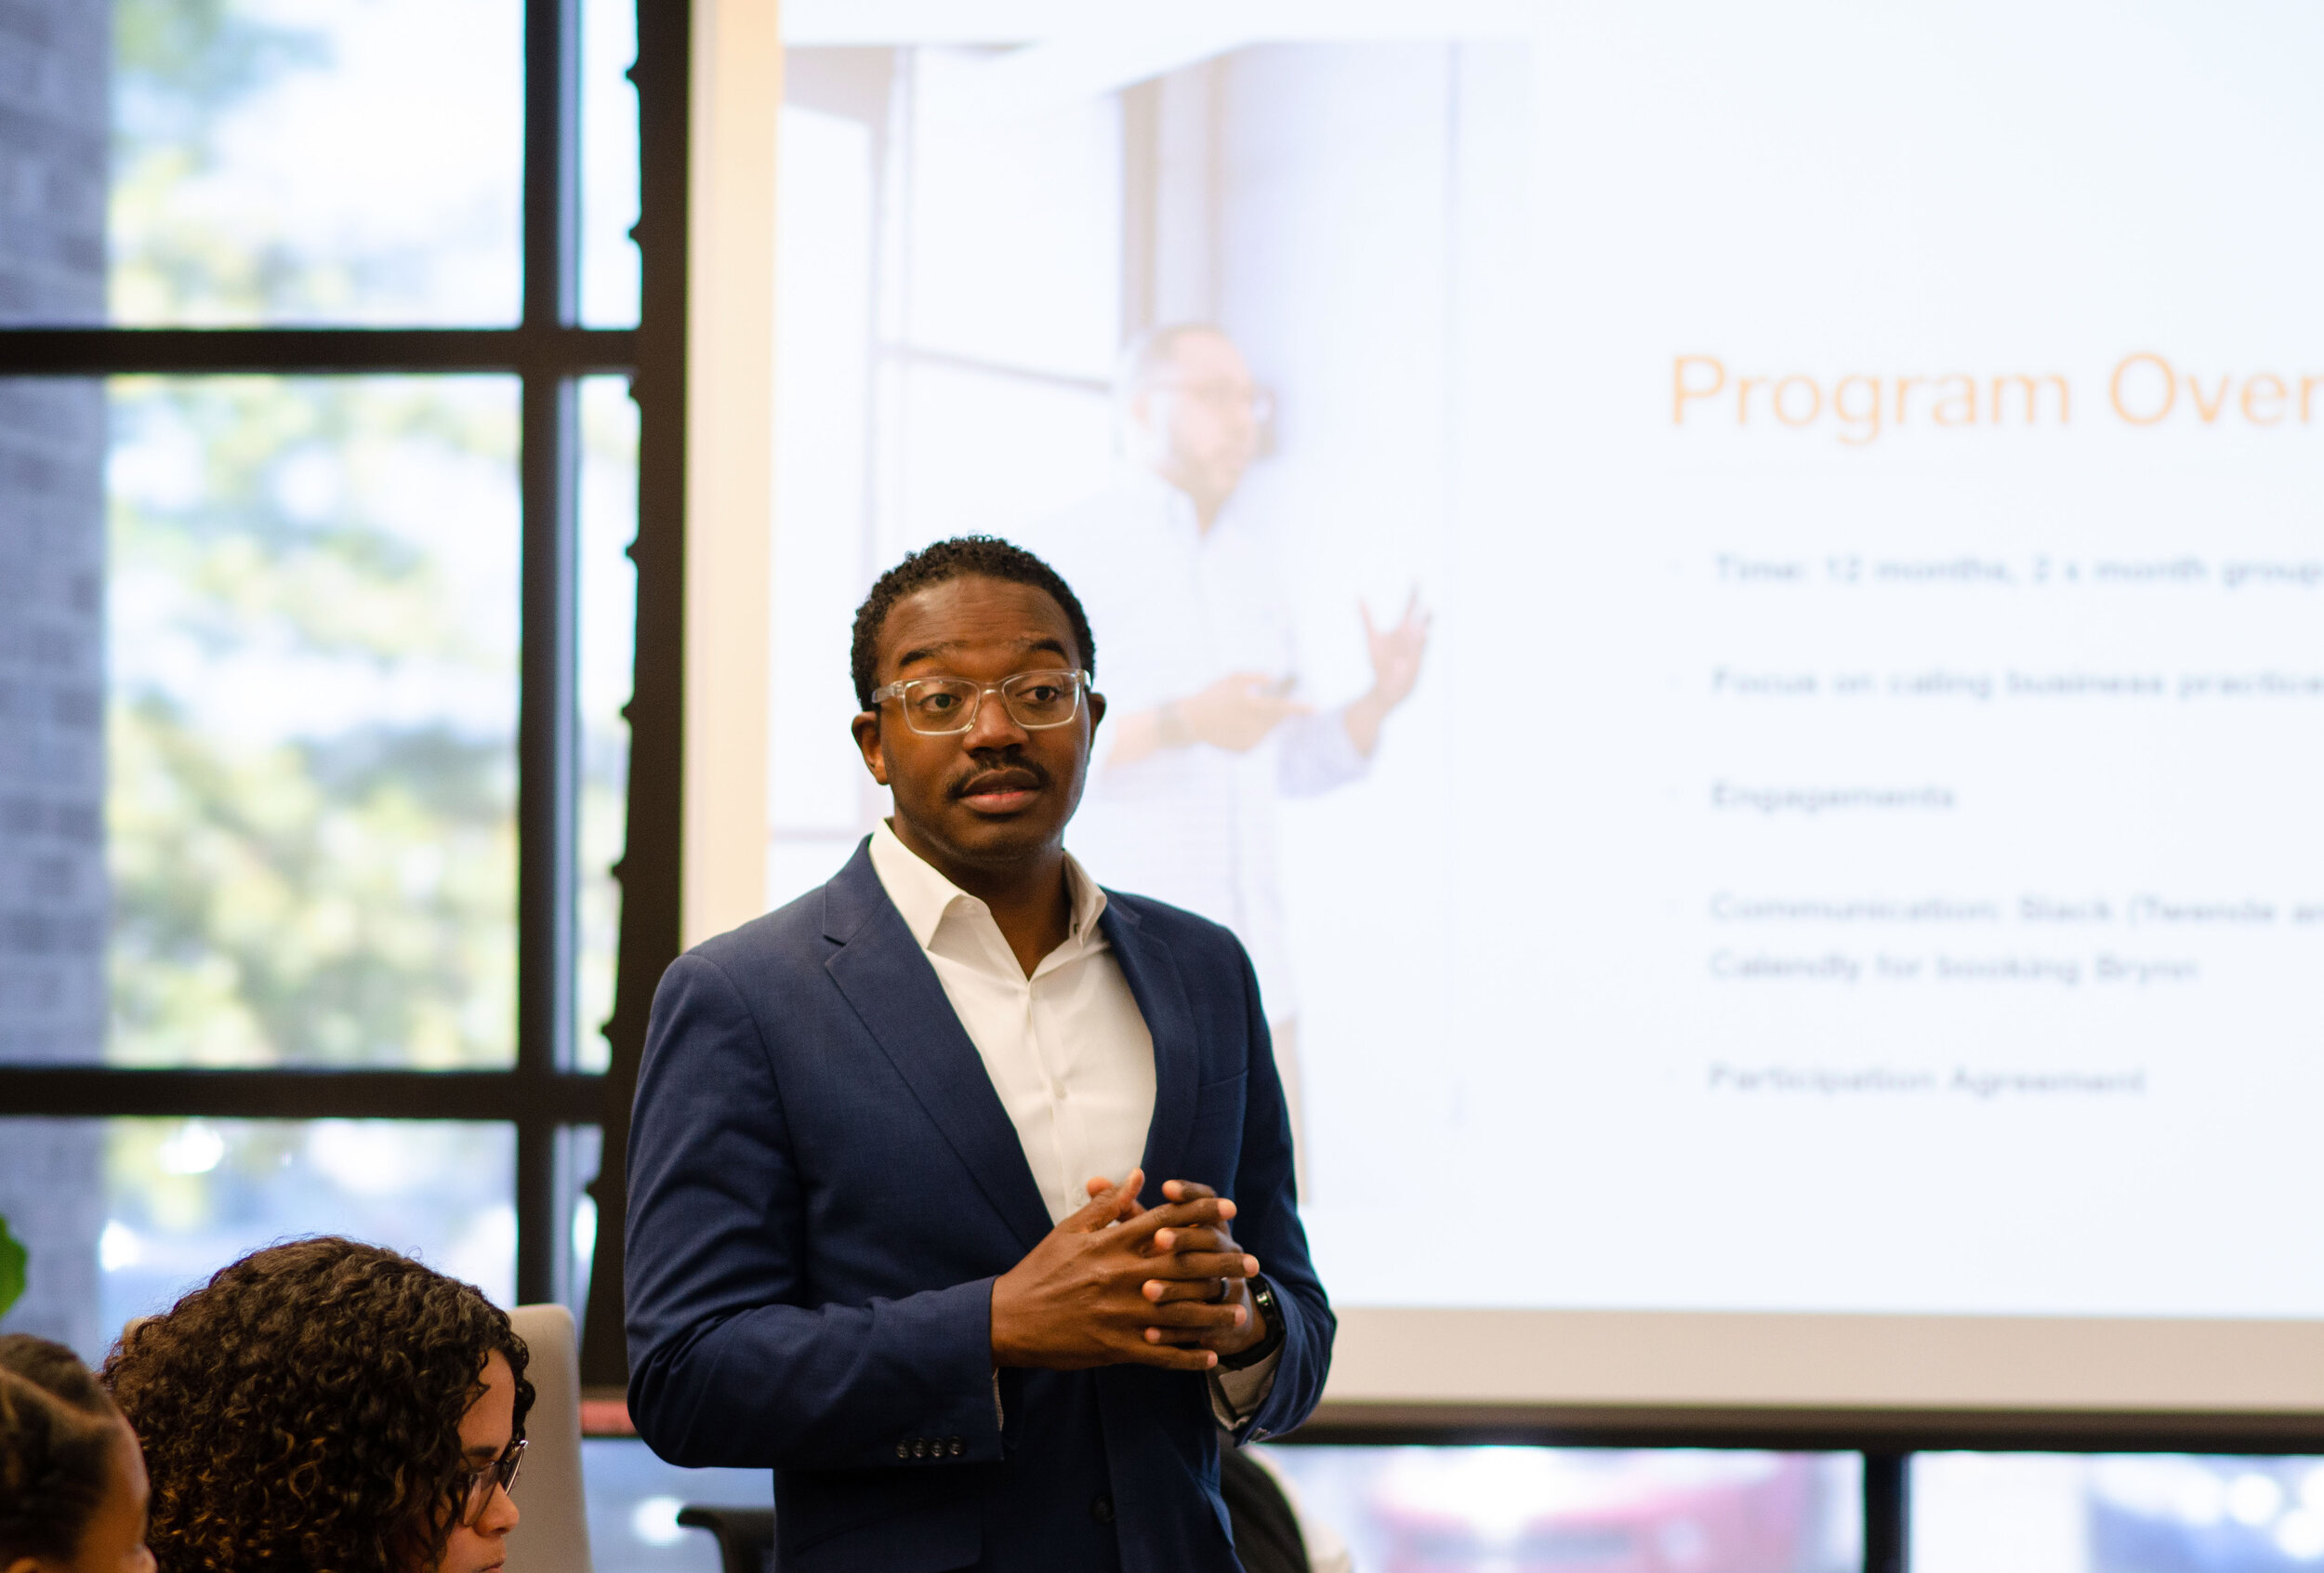 Bill McCleskey, CEO of MiTech Partners, is serving as an Entrepreneur-in-Residence for the 2019 Twende Cohort.